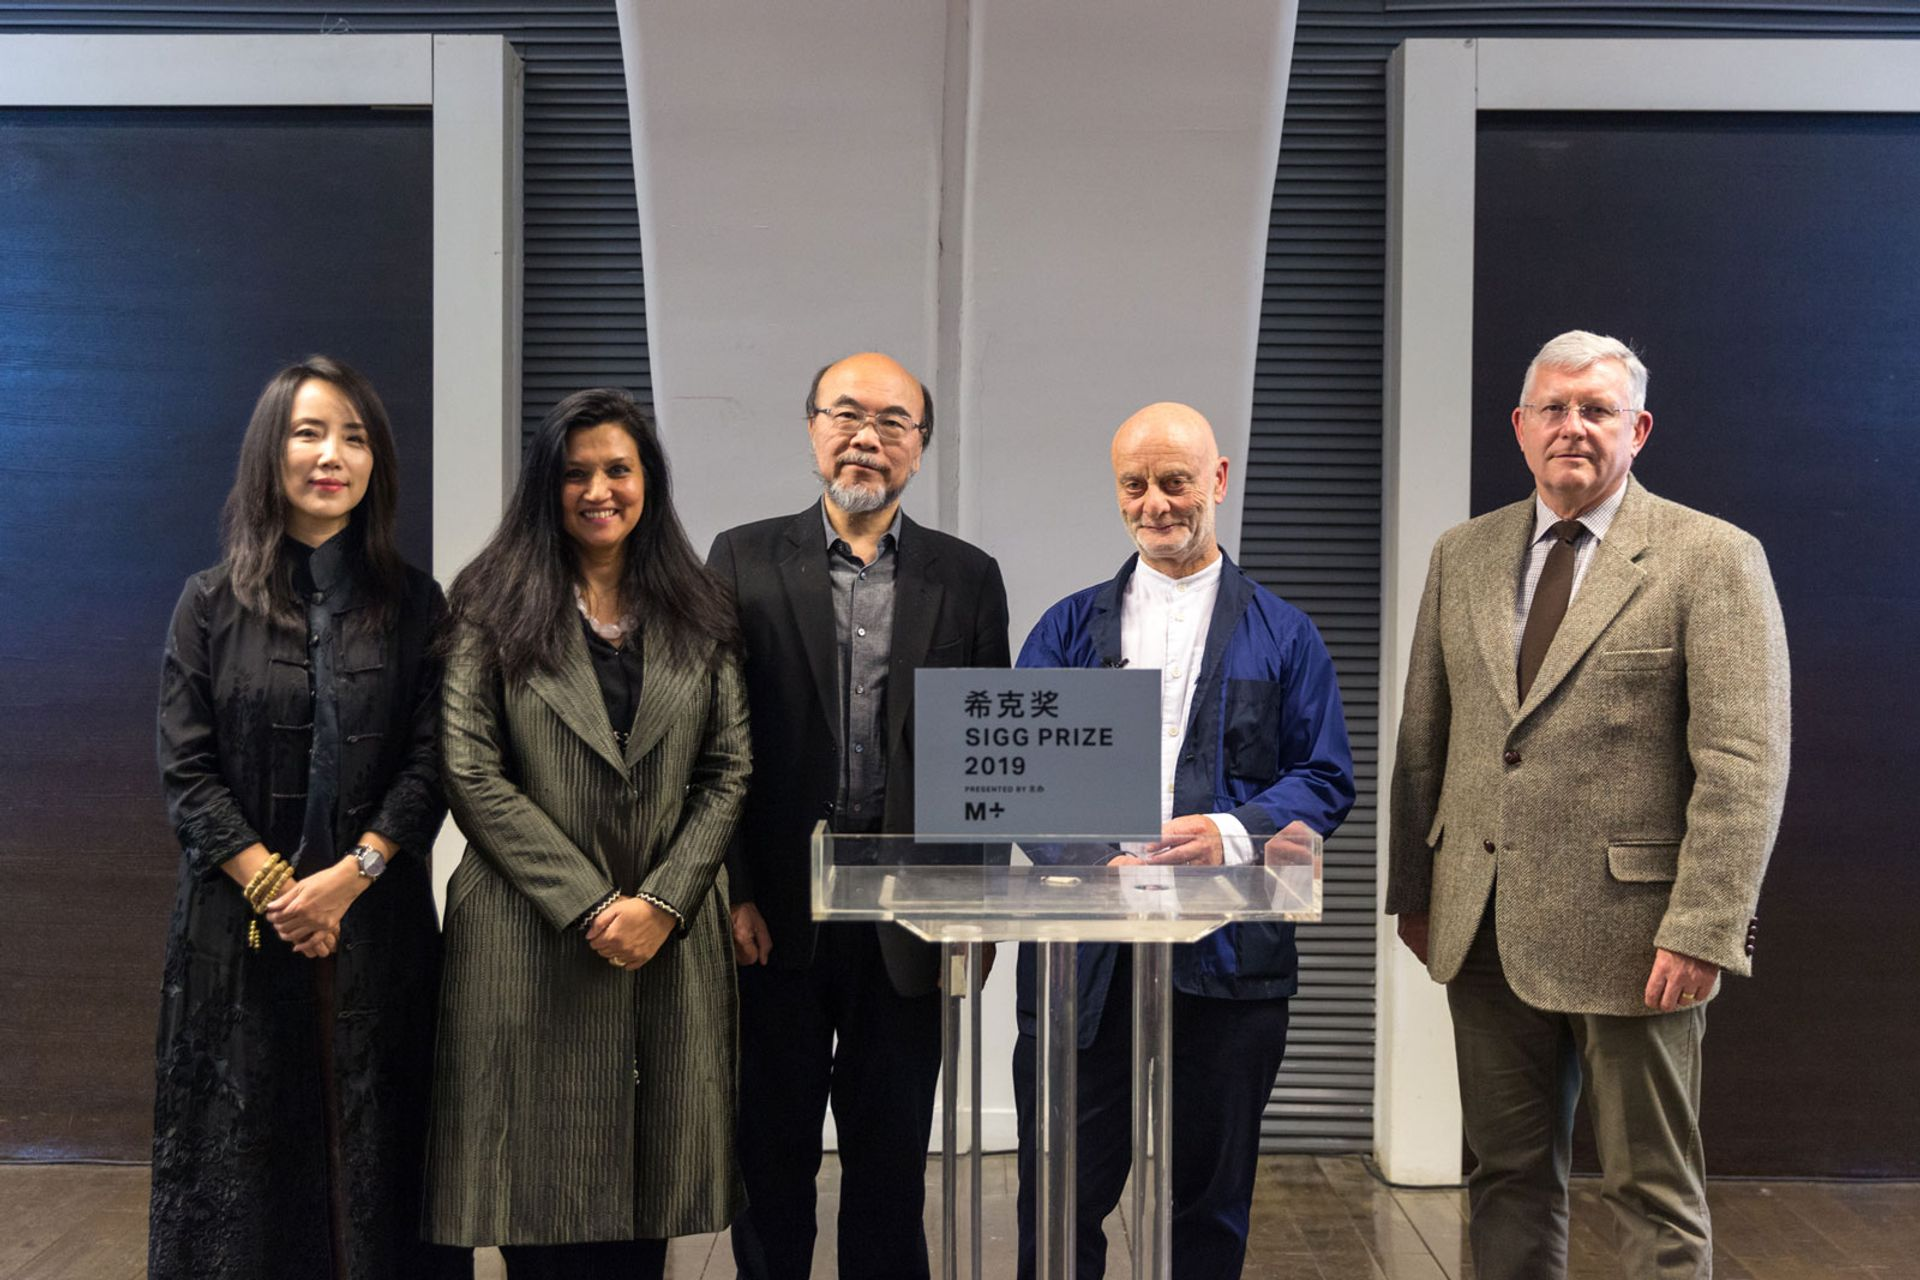 Liu Li Anna, president of the CCAA (2011-2018), Suhanya Raffel, executive director, M+,  Victor Lo Chung-wing, chairman of M+ Board Uli Sigg, founder of the CCAA, Duncan Pescod, chief executive officer of the West Kowloon Cultural District Authority at the launch of the Sigg Prize Courtesy of West Kowloon Cultural District Authority